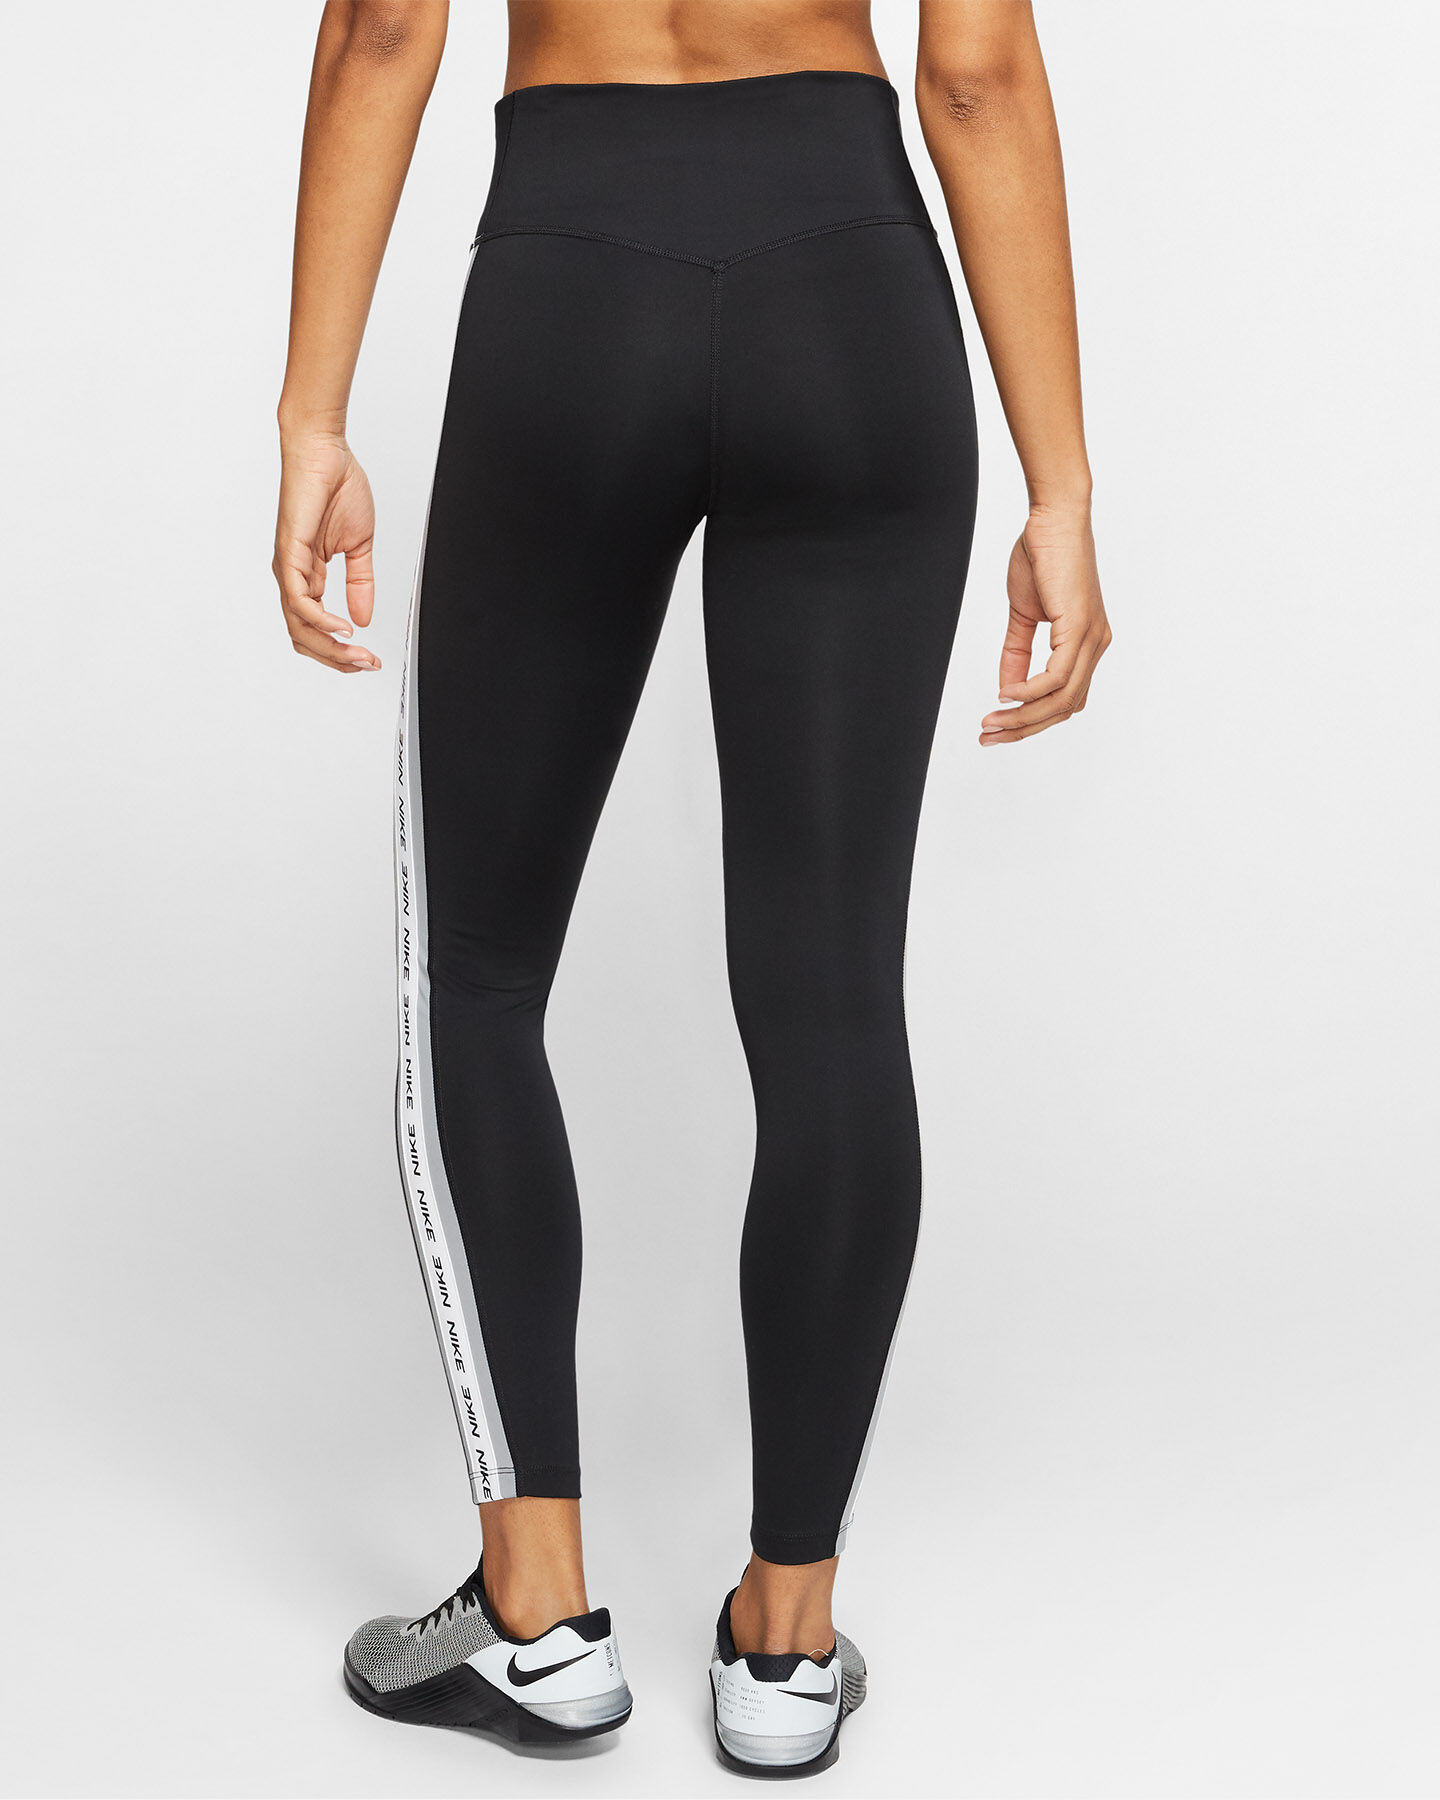 Leggings NIKE ONE 7/8 TAPE W S5172994 scatto 3